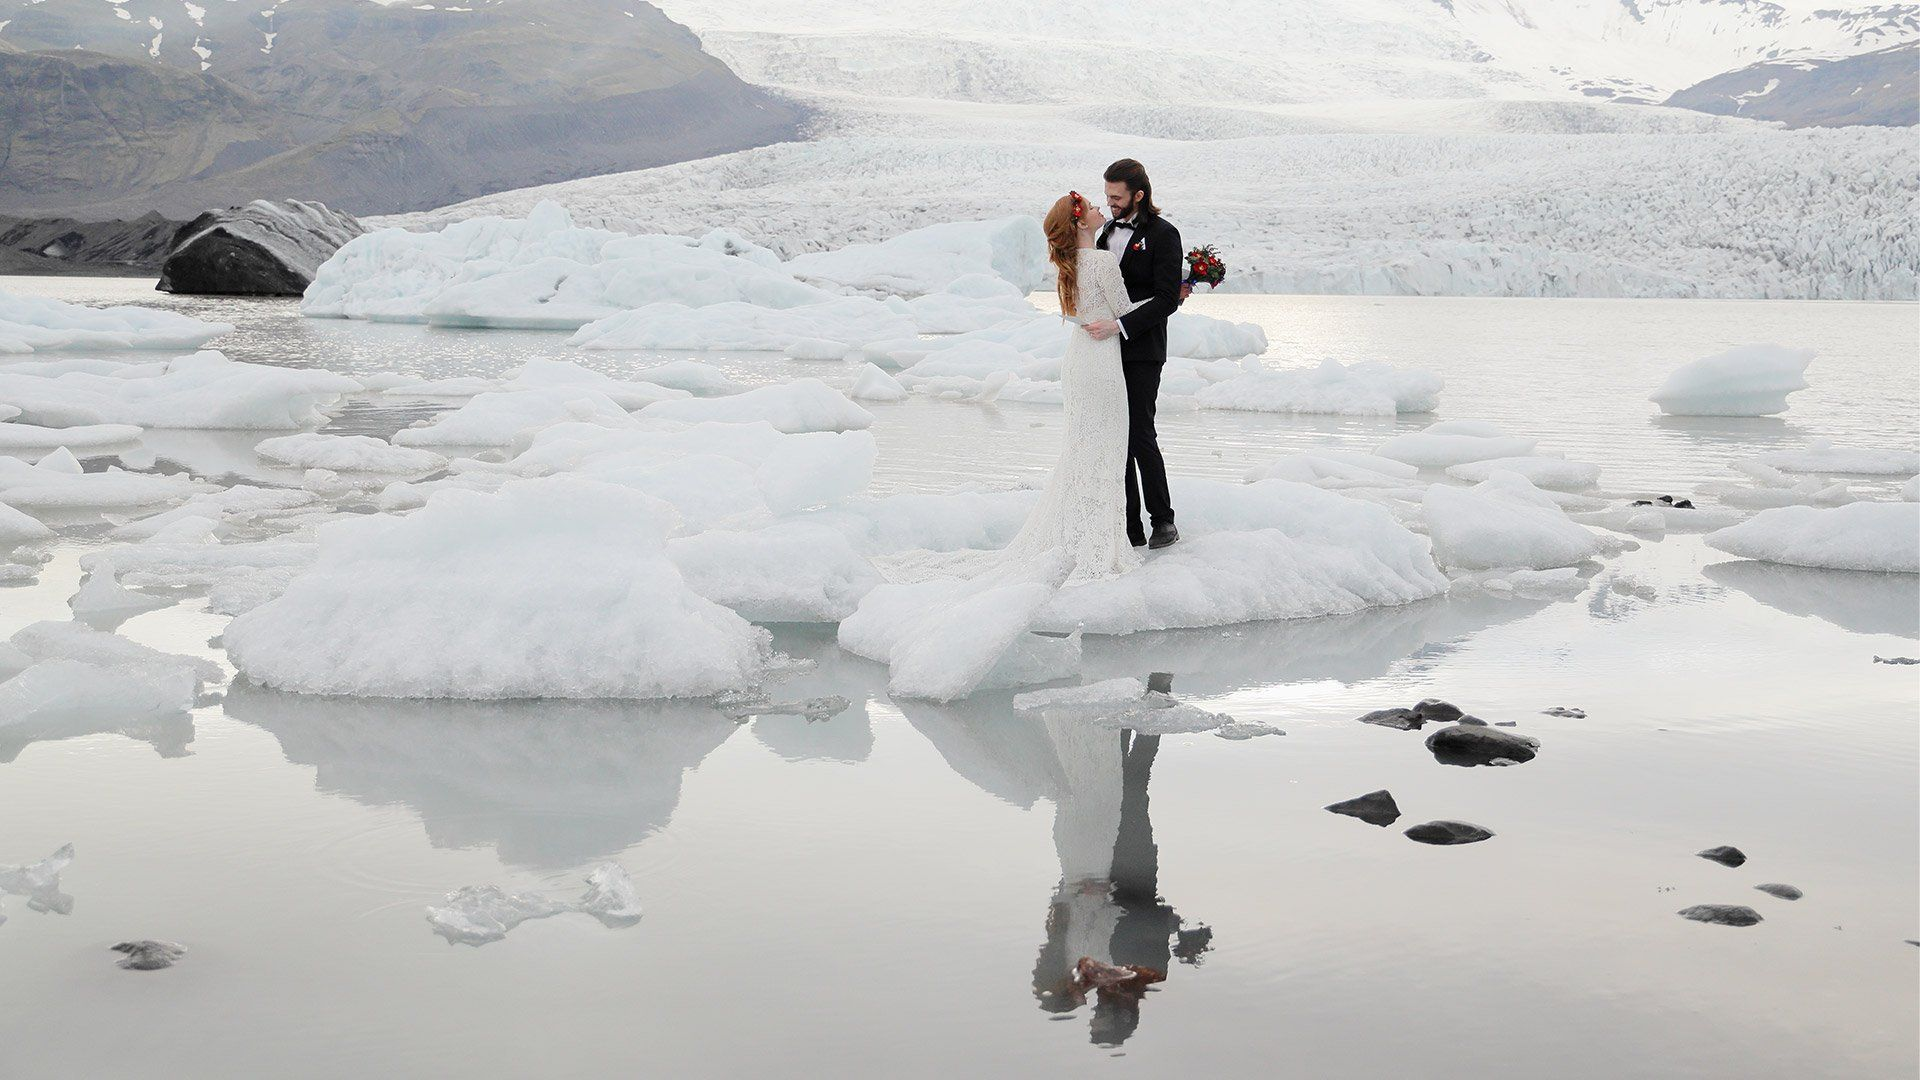 Eloped couple during ceremony on ice in Iceland shot on Canon EOS R & RF 24-105mm F4L IS USM